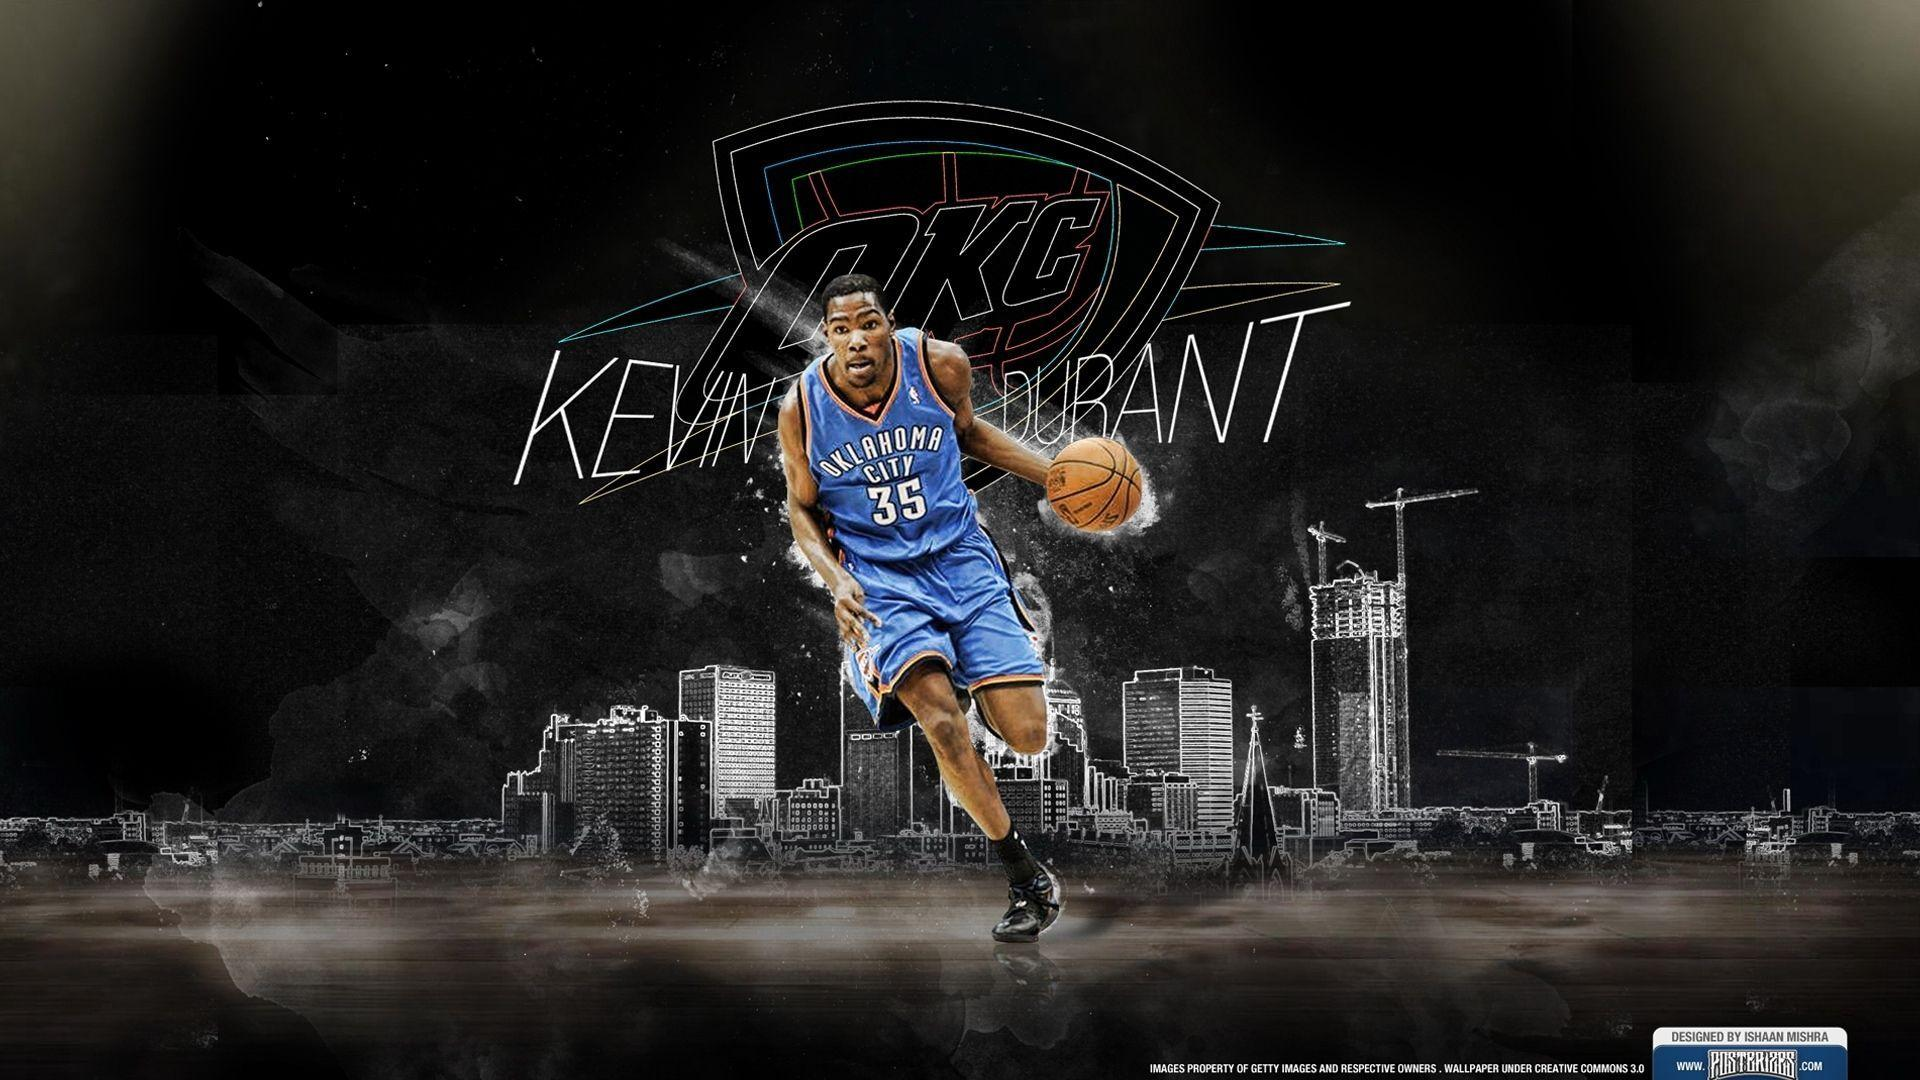 Kevin Durant Dunk Wallpapers 2017 - Wallpaper Cave